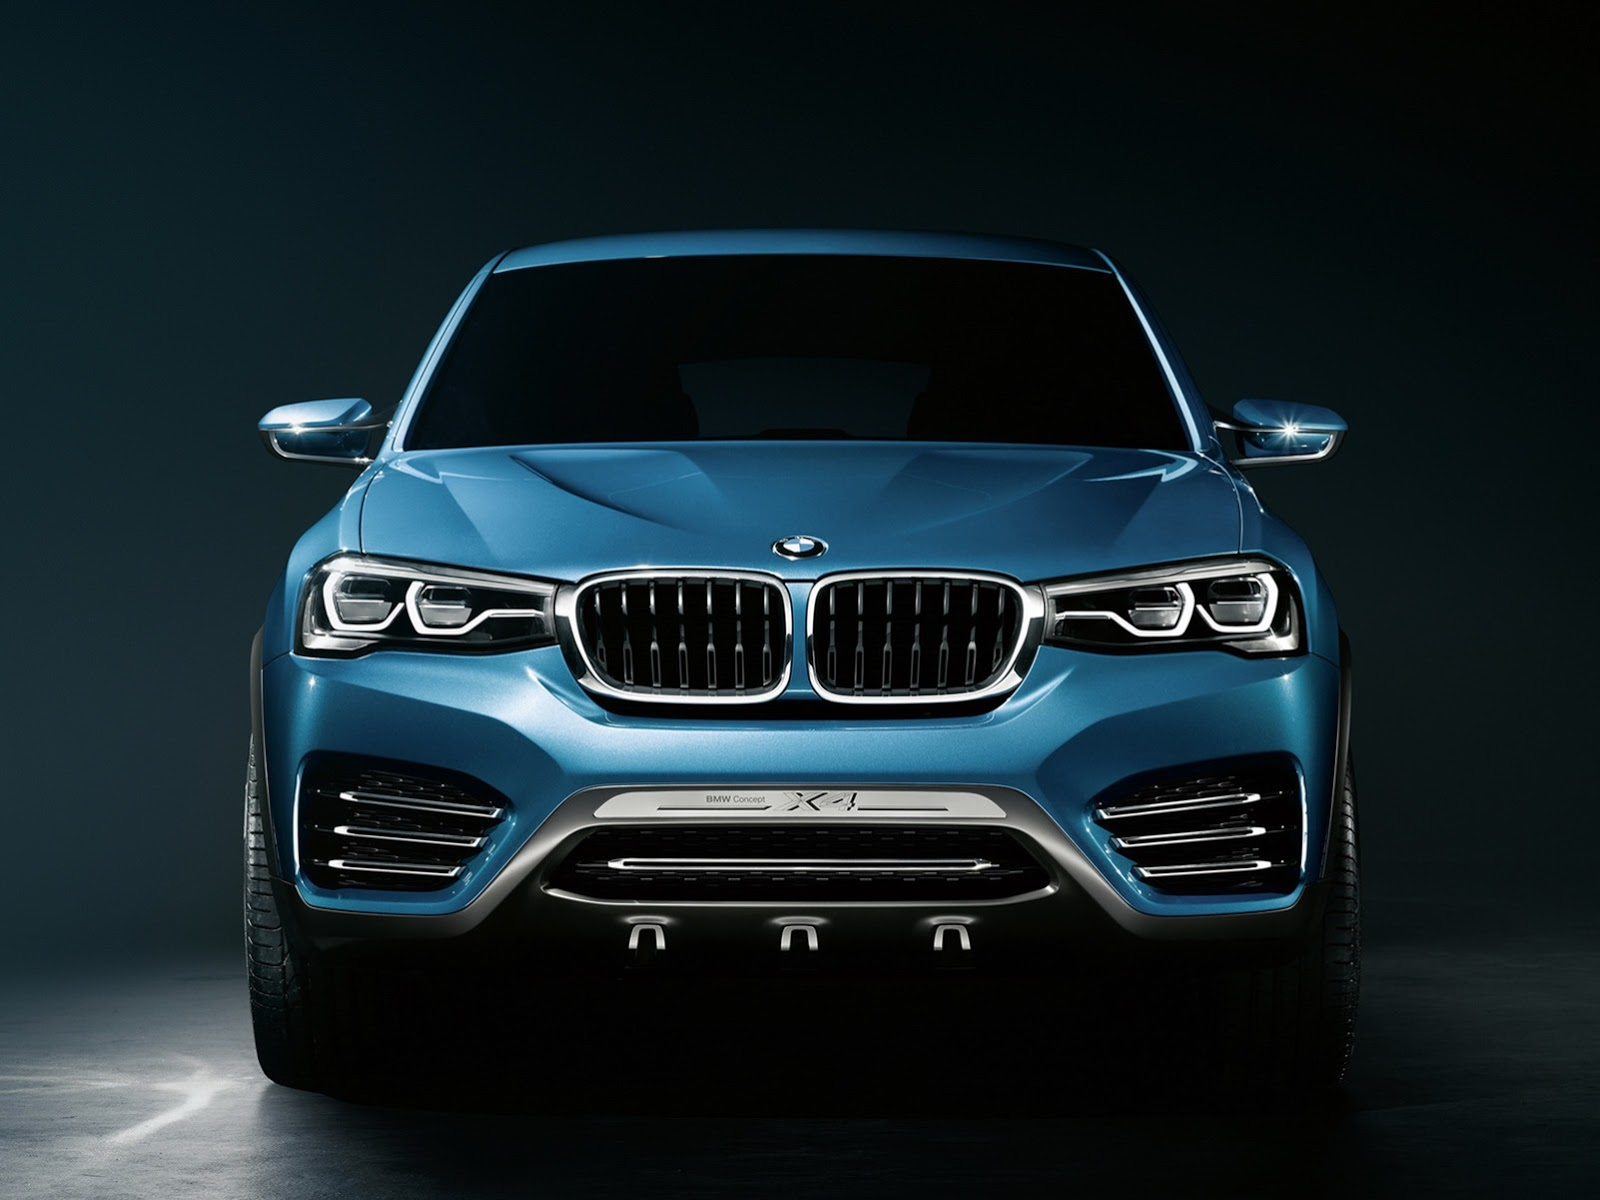 new bmw x4 concept photo gallery car gallery suv crossovers autocar india. Black Bedroom Furniture Sets. Home Design Ideas